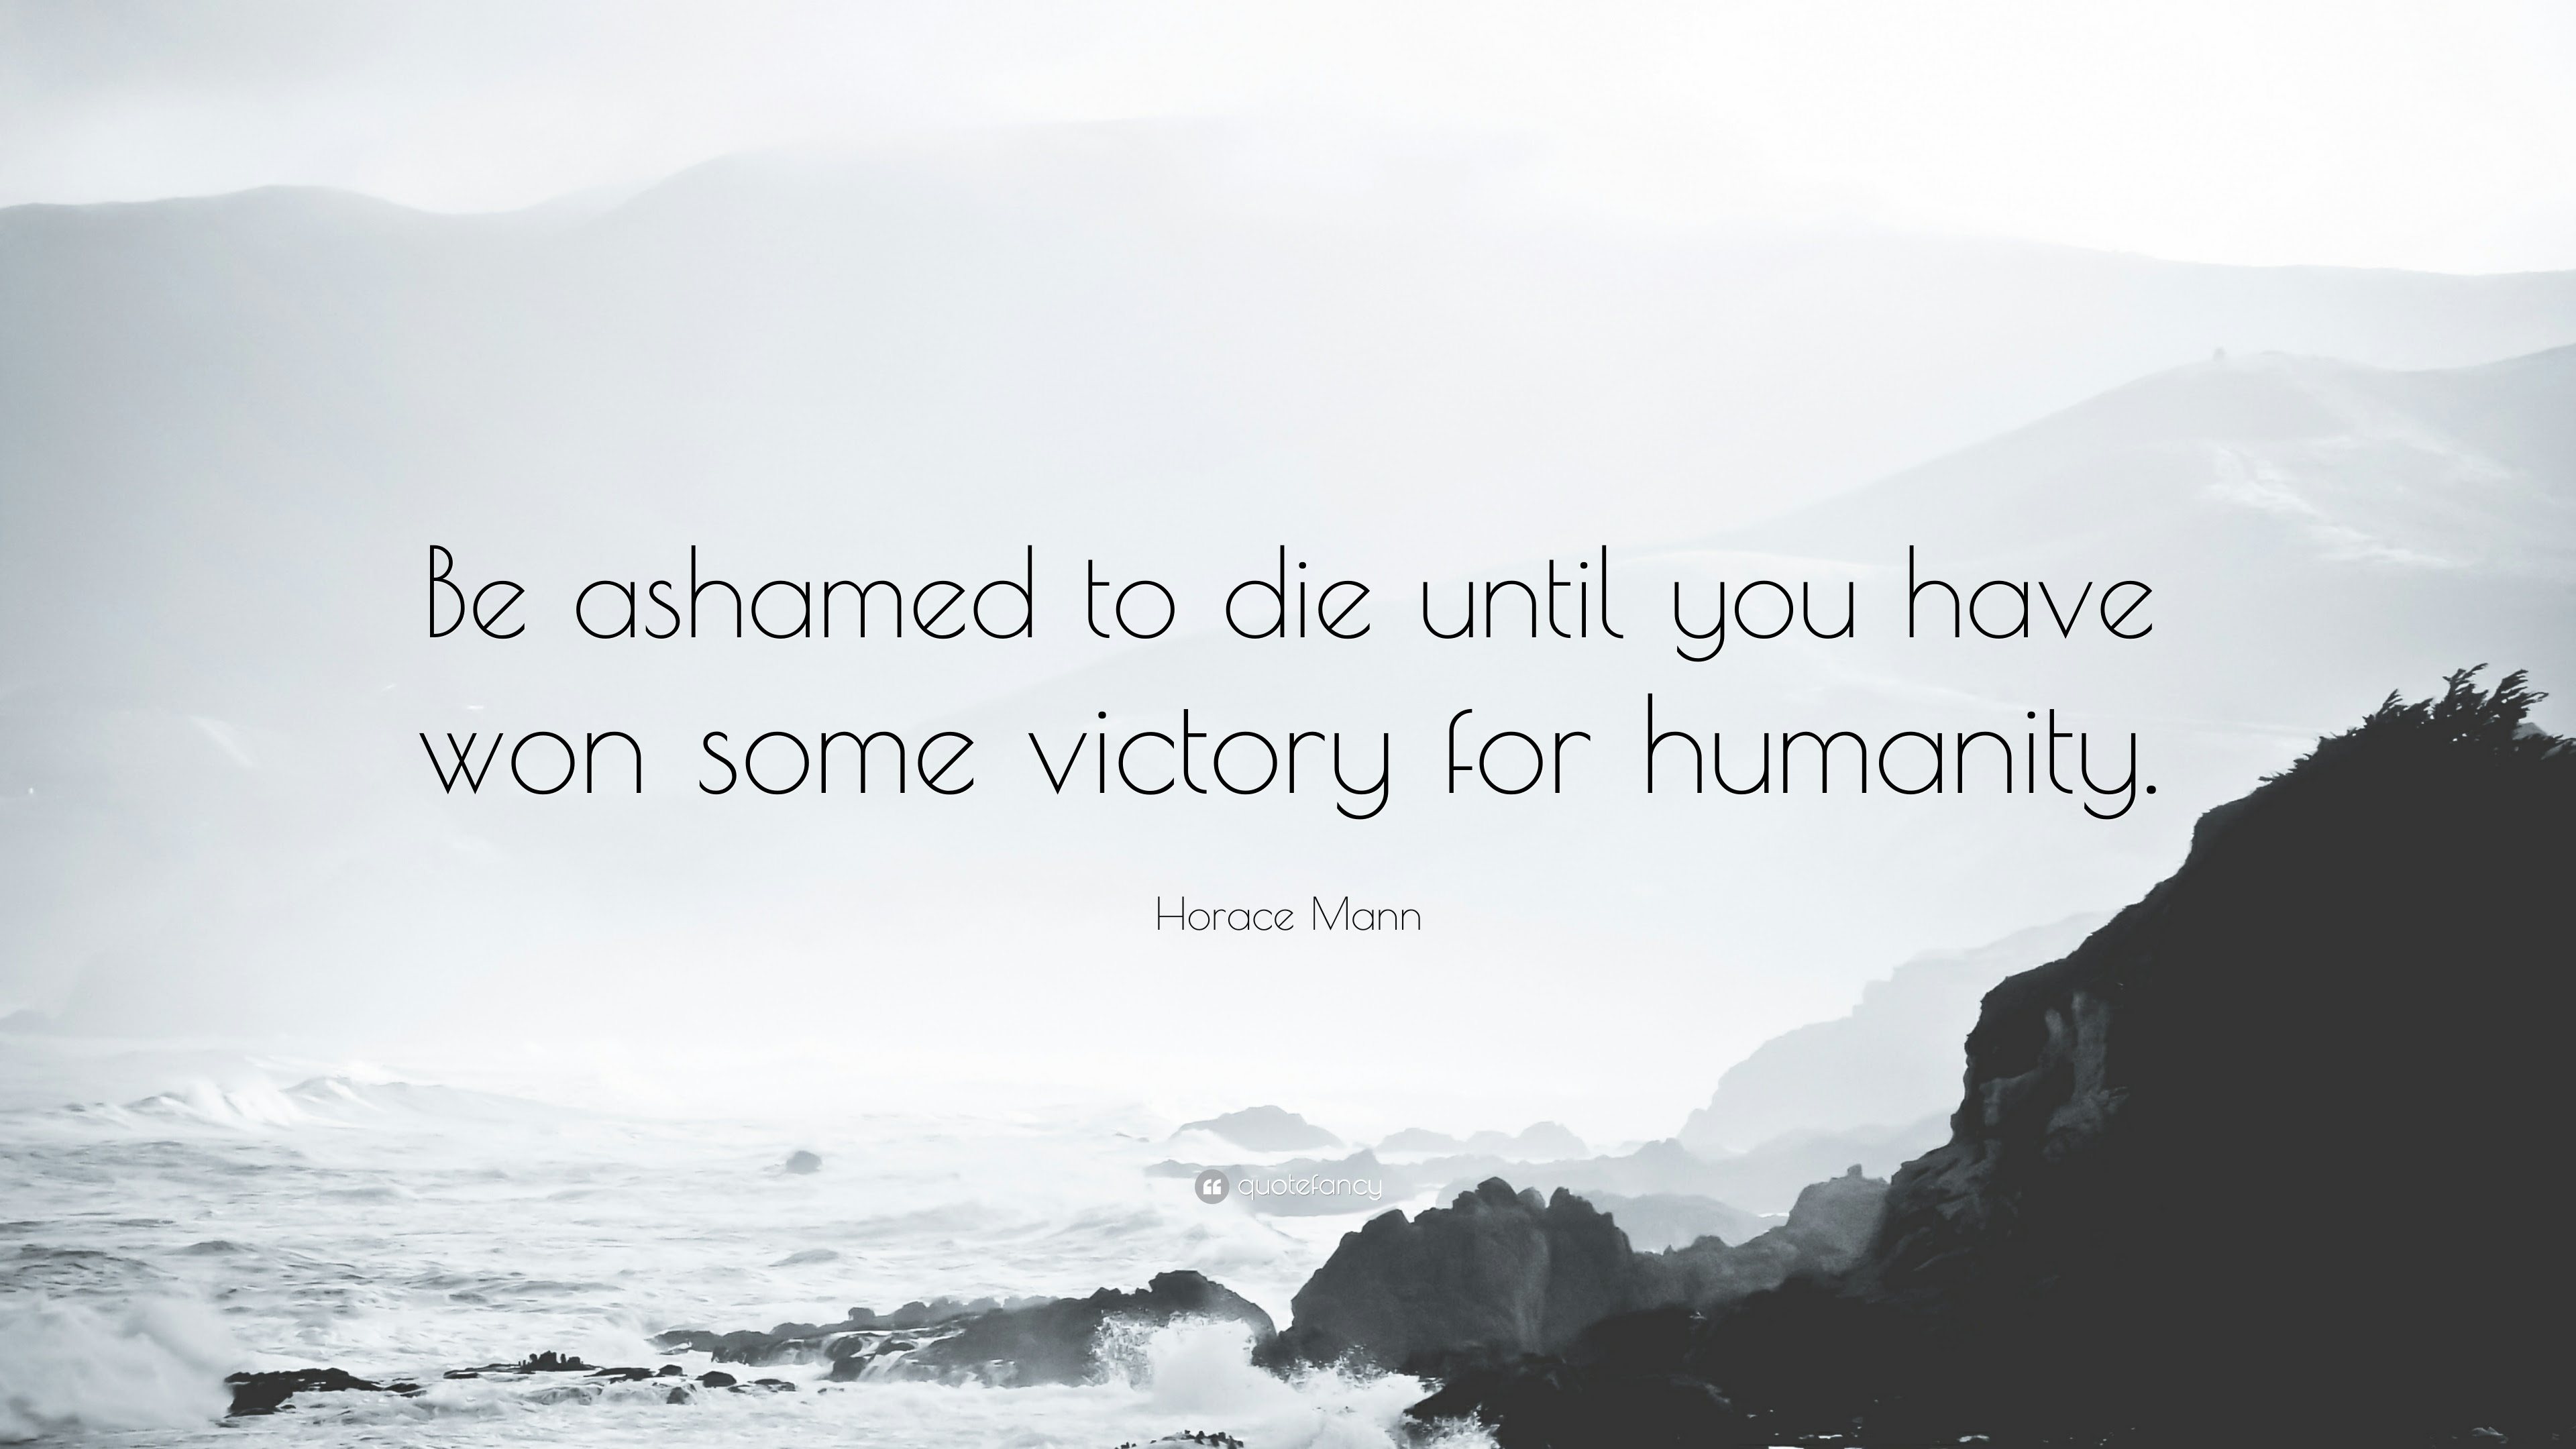 Be Ashamed To Die Horace Mann And Veganism In A Cruel World